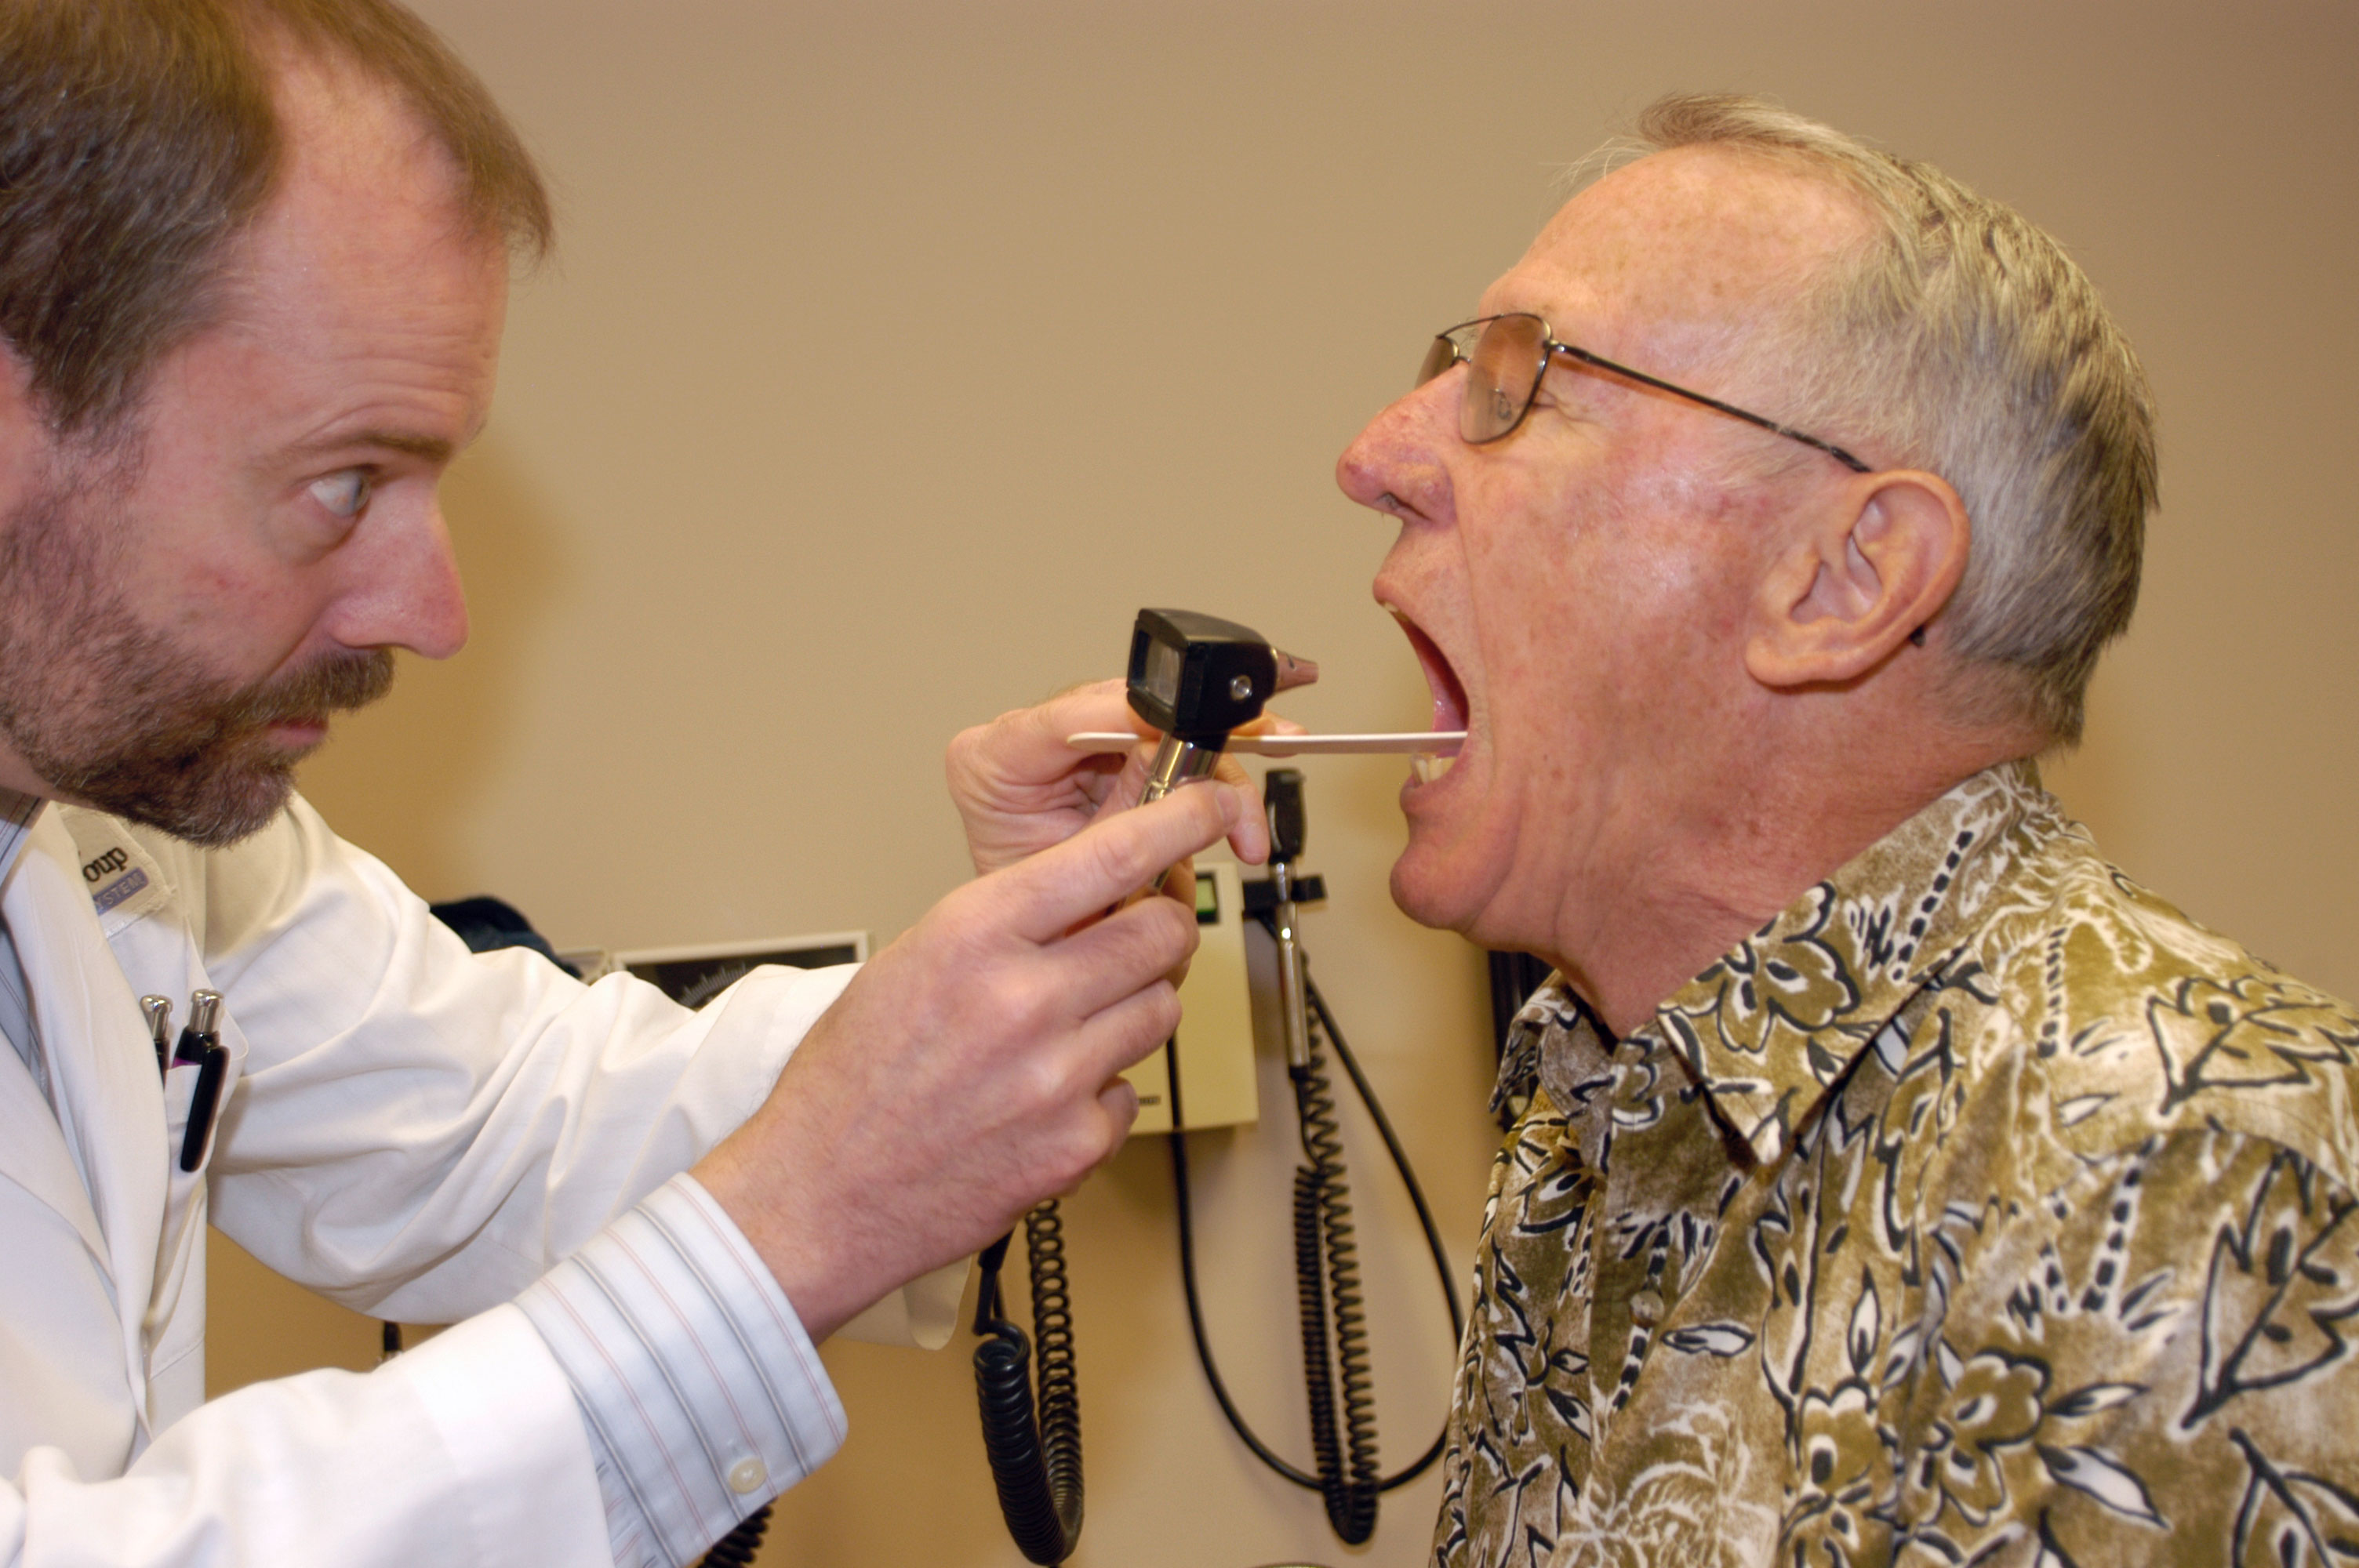 a doctor looking into a patient's mouth